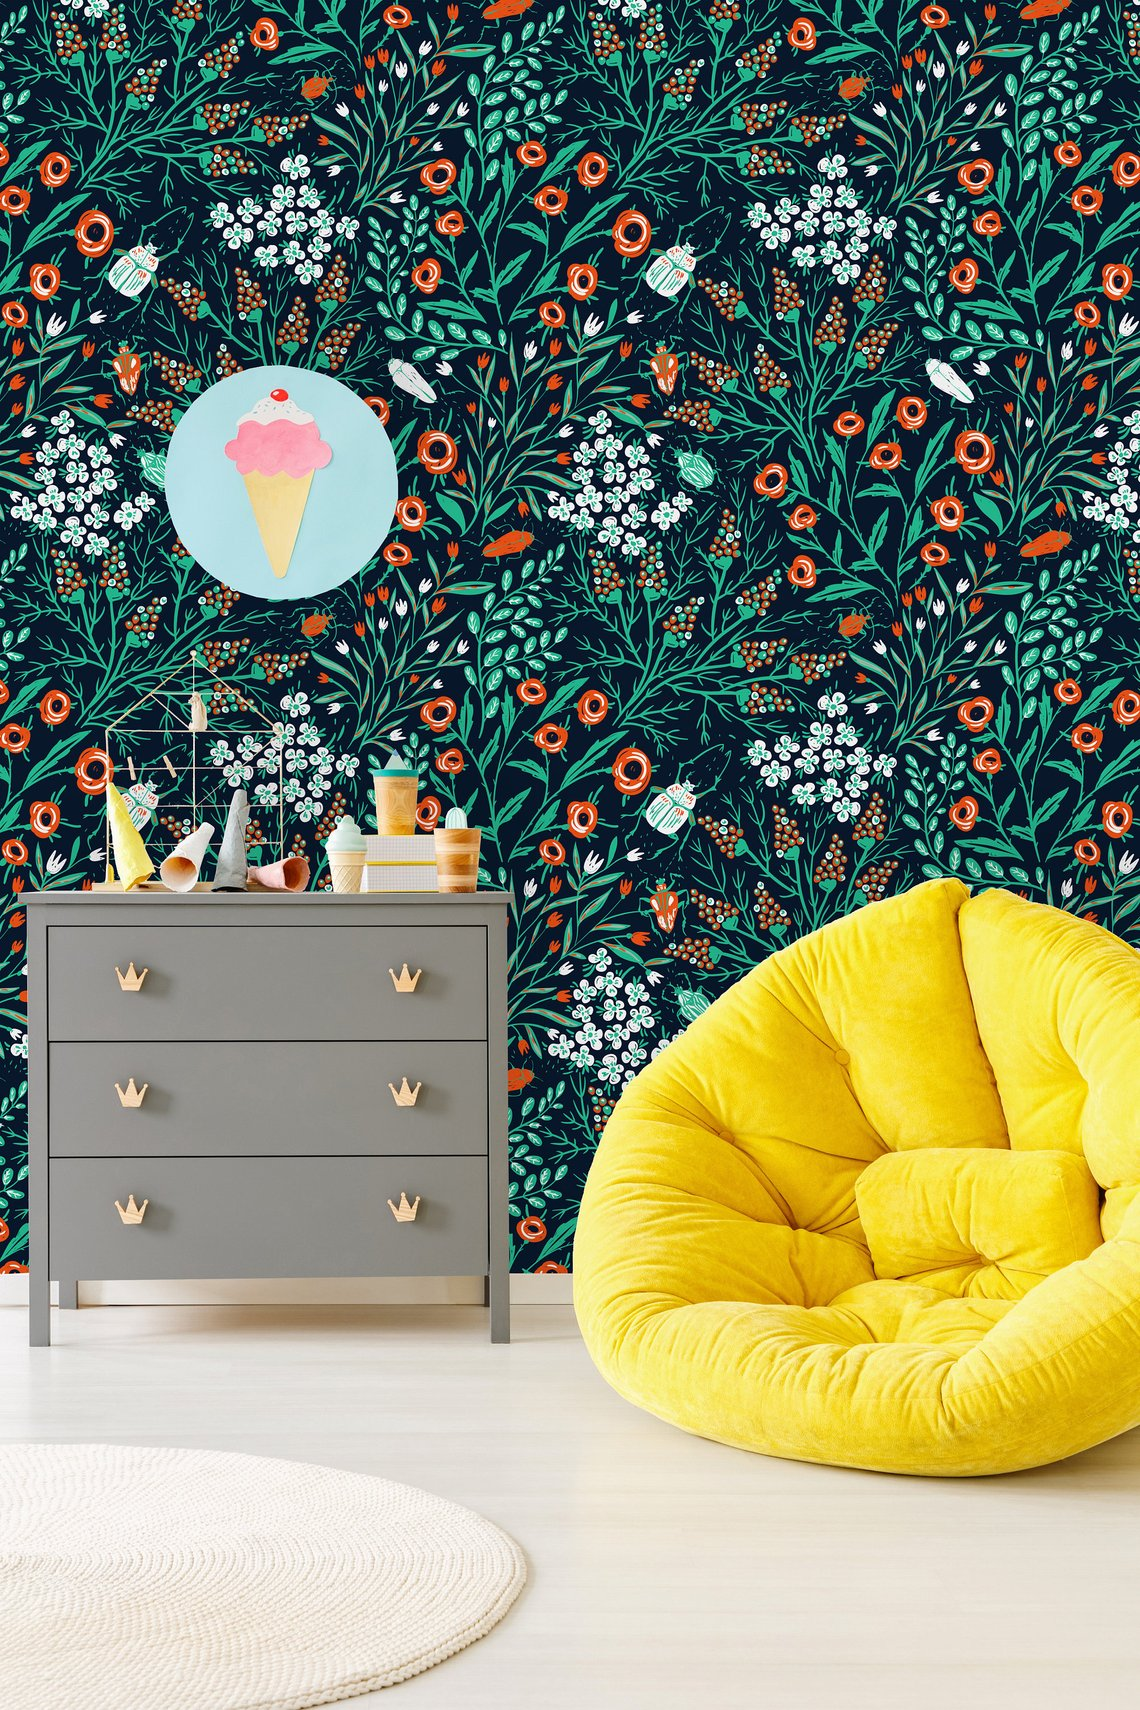 Blooms and Colored Beetles By MilkyWayDecor